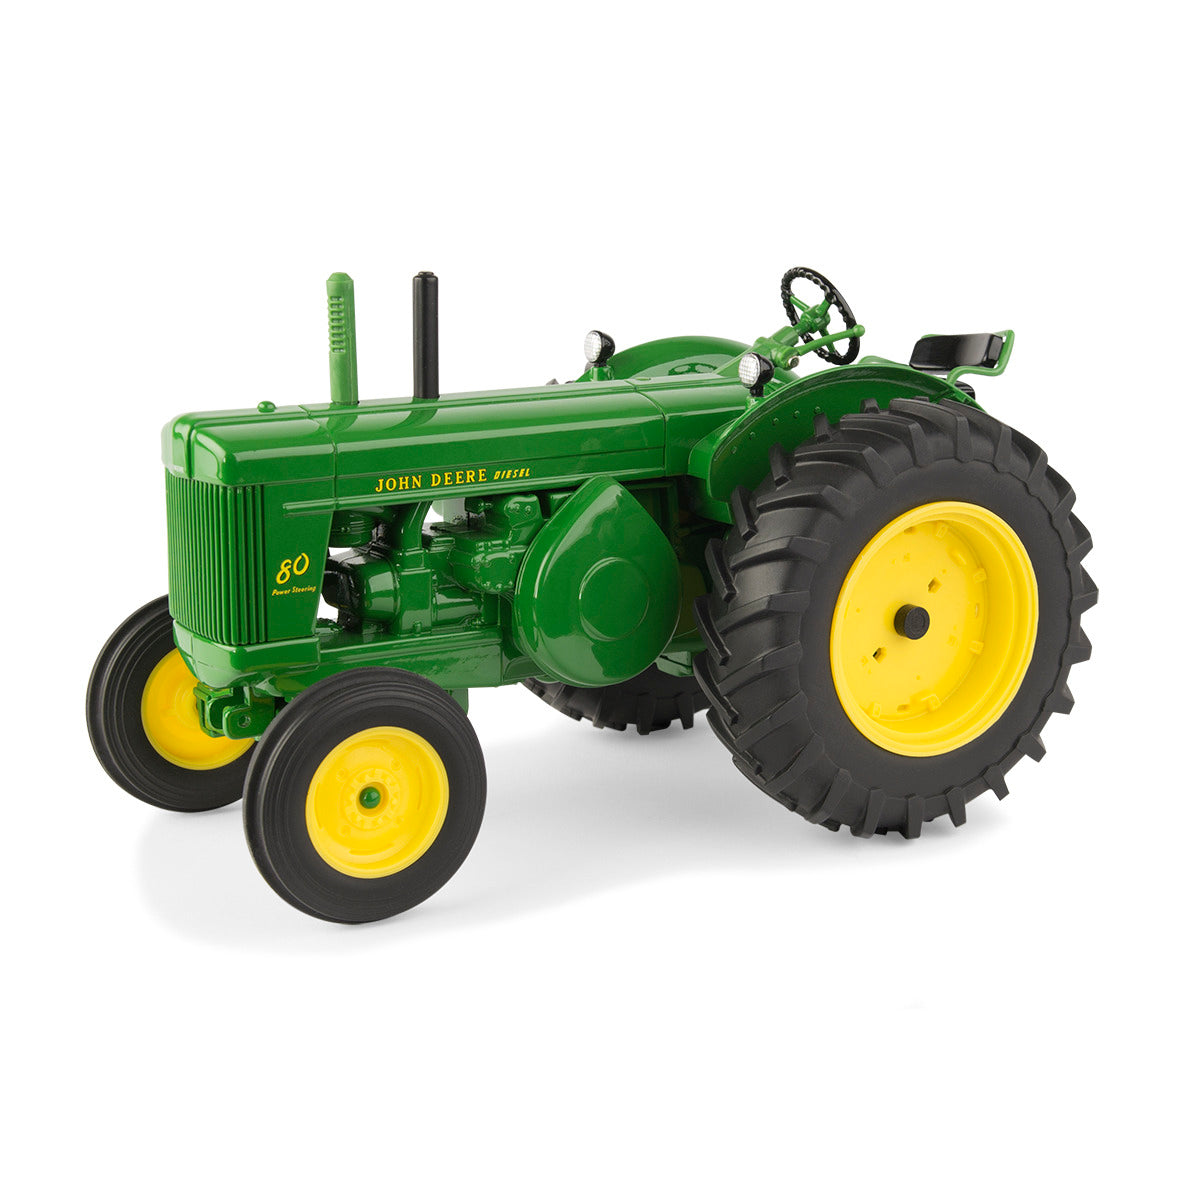 1/16 John Deere Model 80 Tractor Toy - LP69914